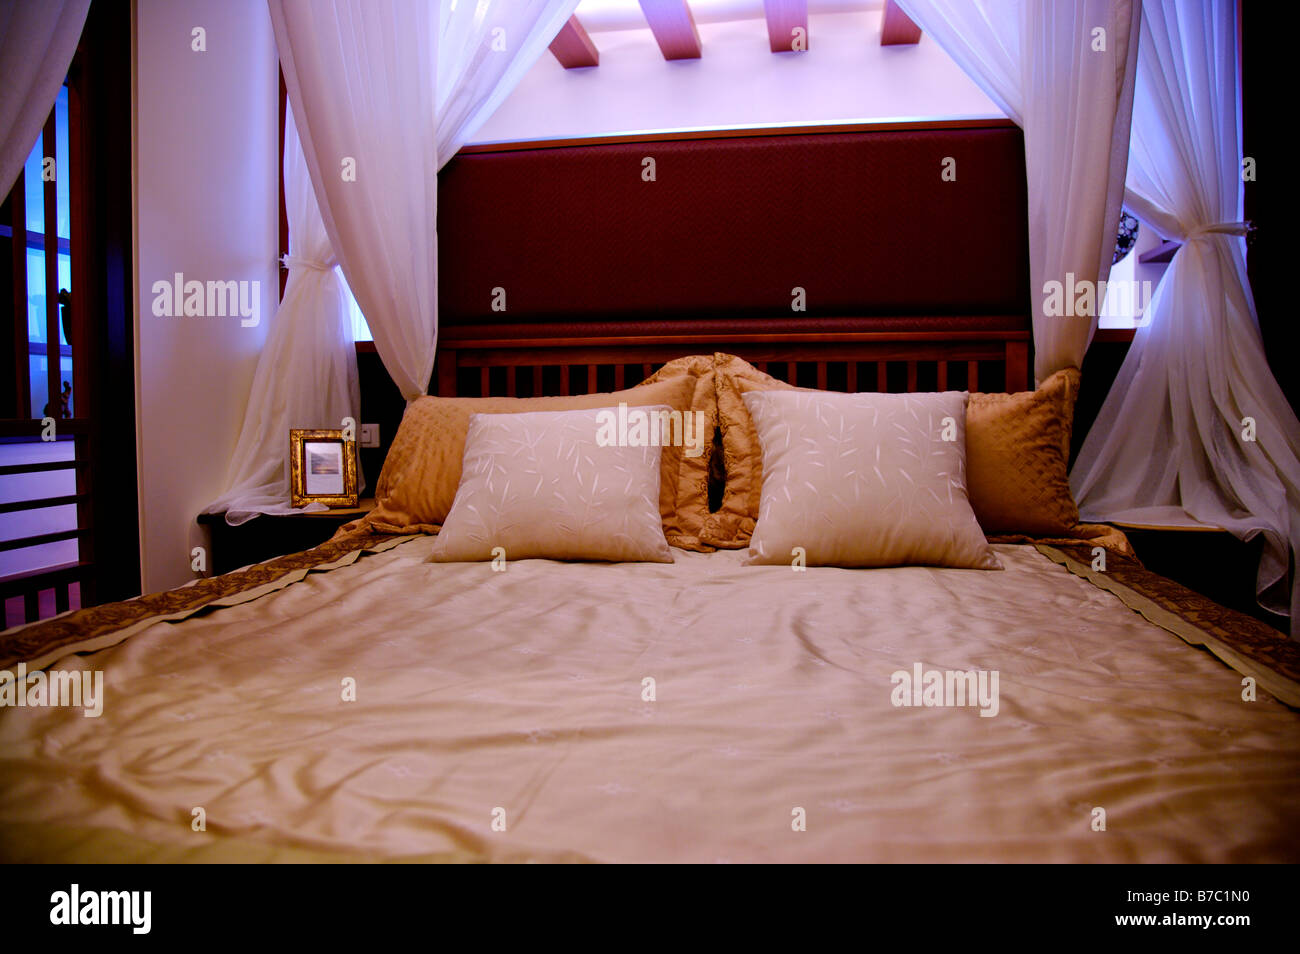 Four poster bed with white curtains and a photo frame beside the bed - Stock Image